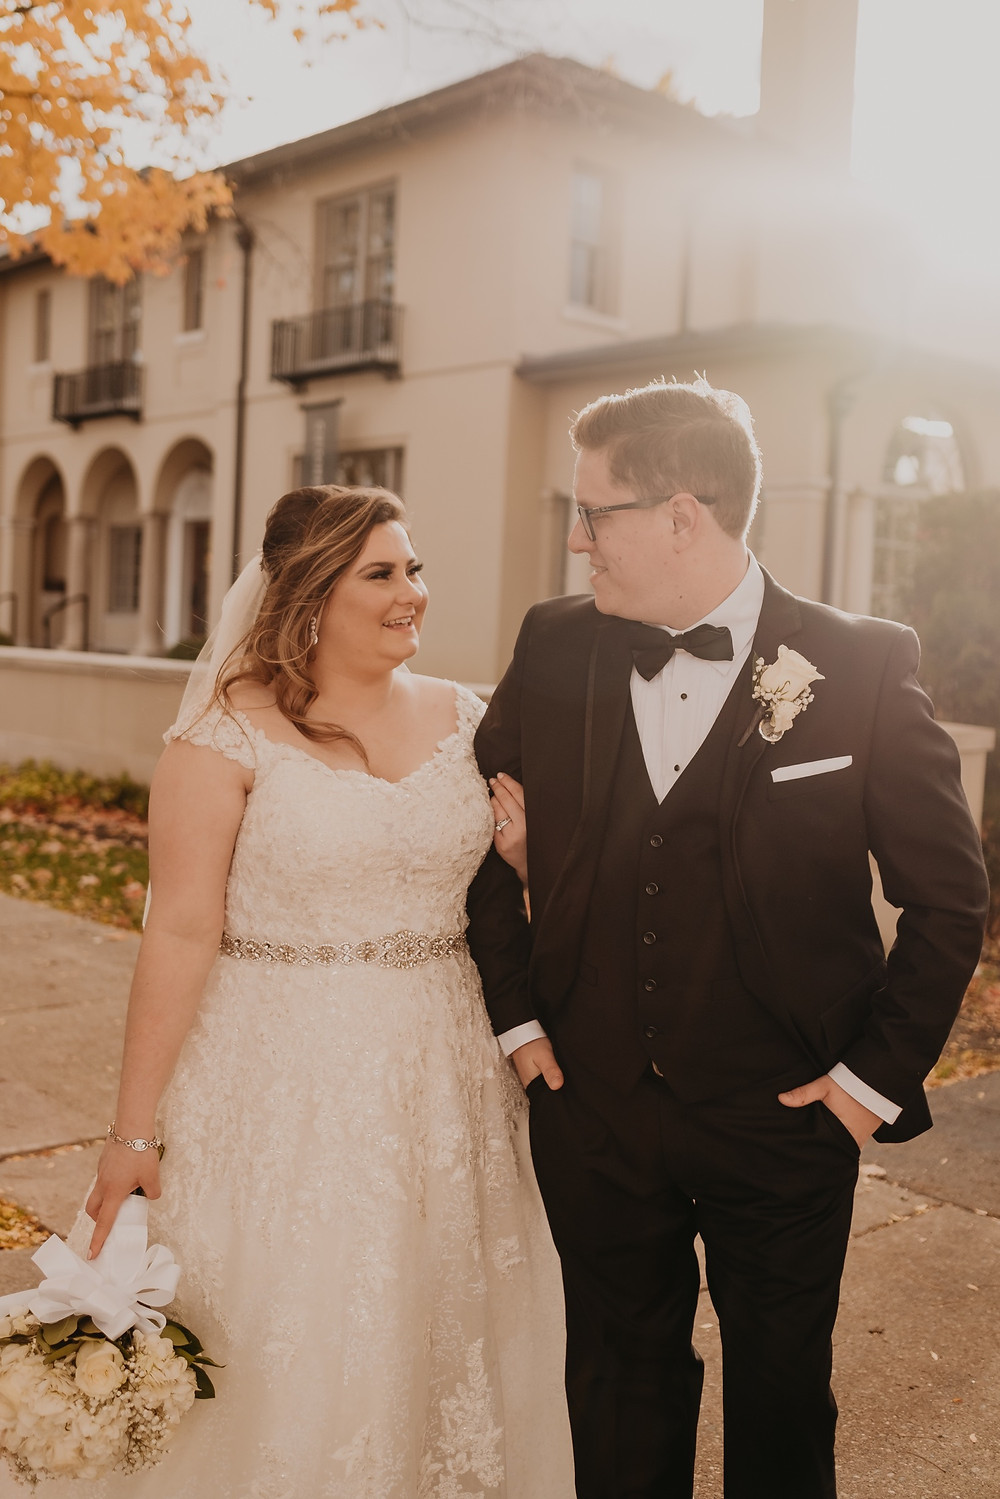 Autumn Michigan wedding. Photographed by Nicole Leanne Photography.